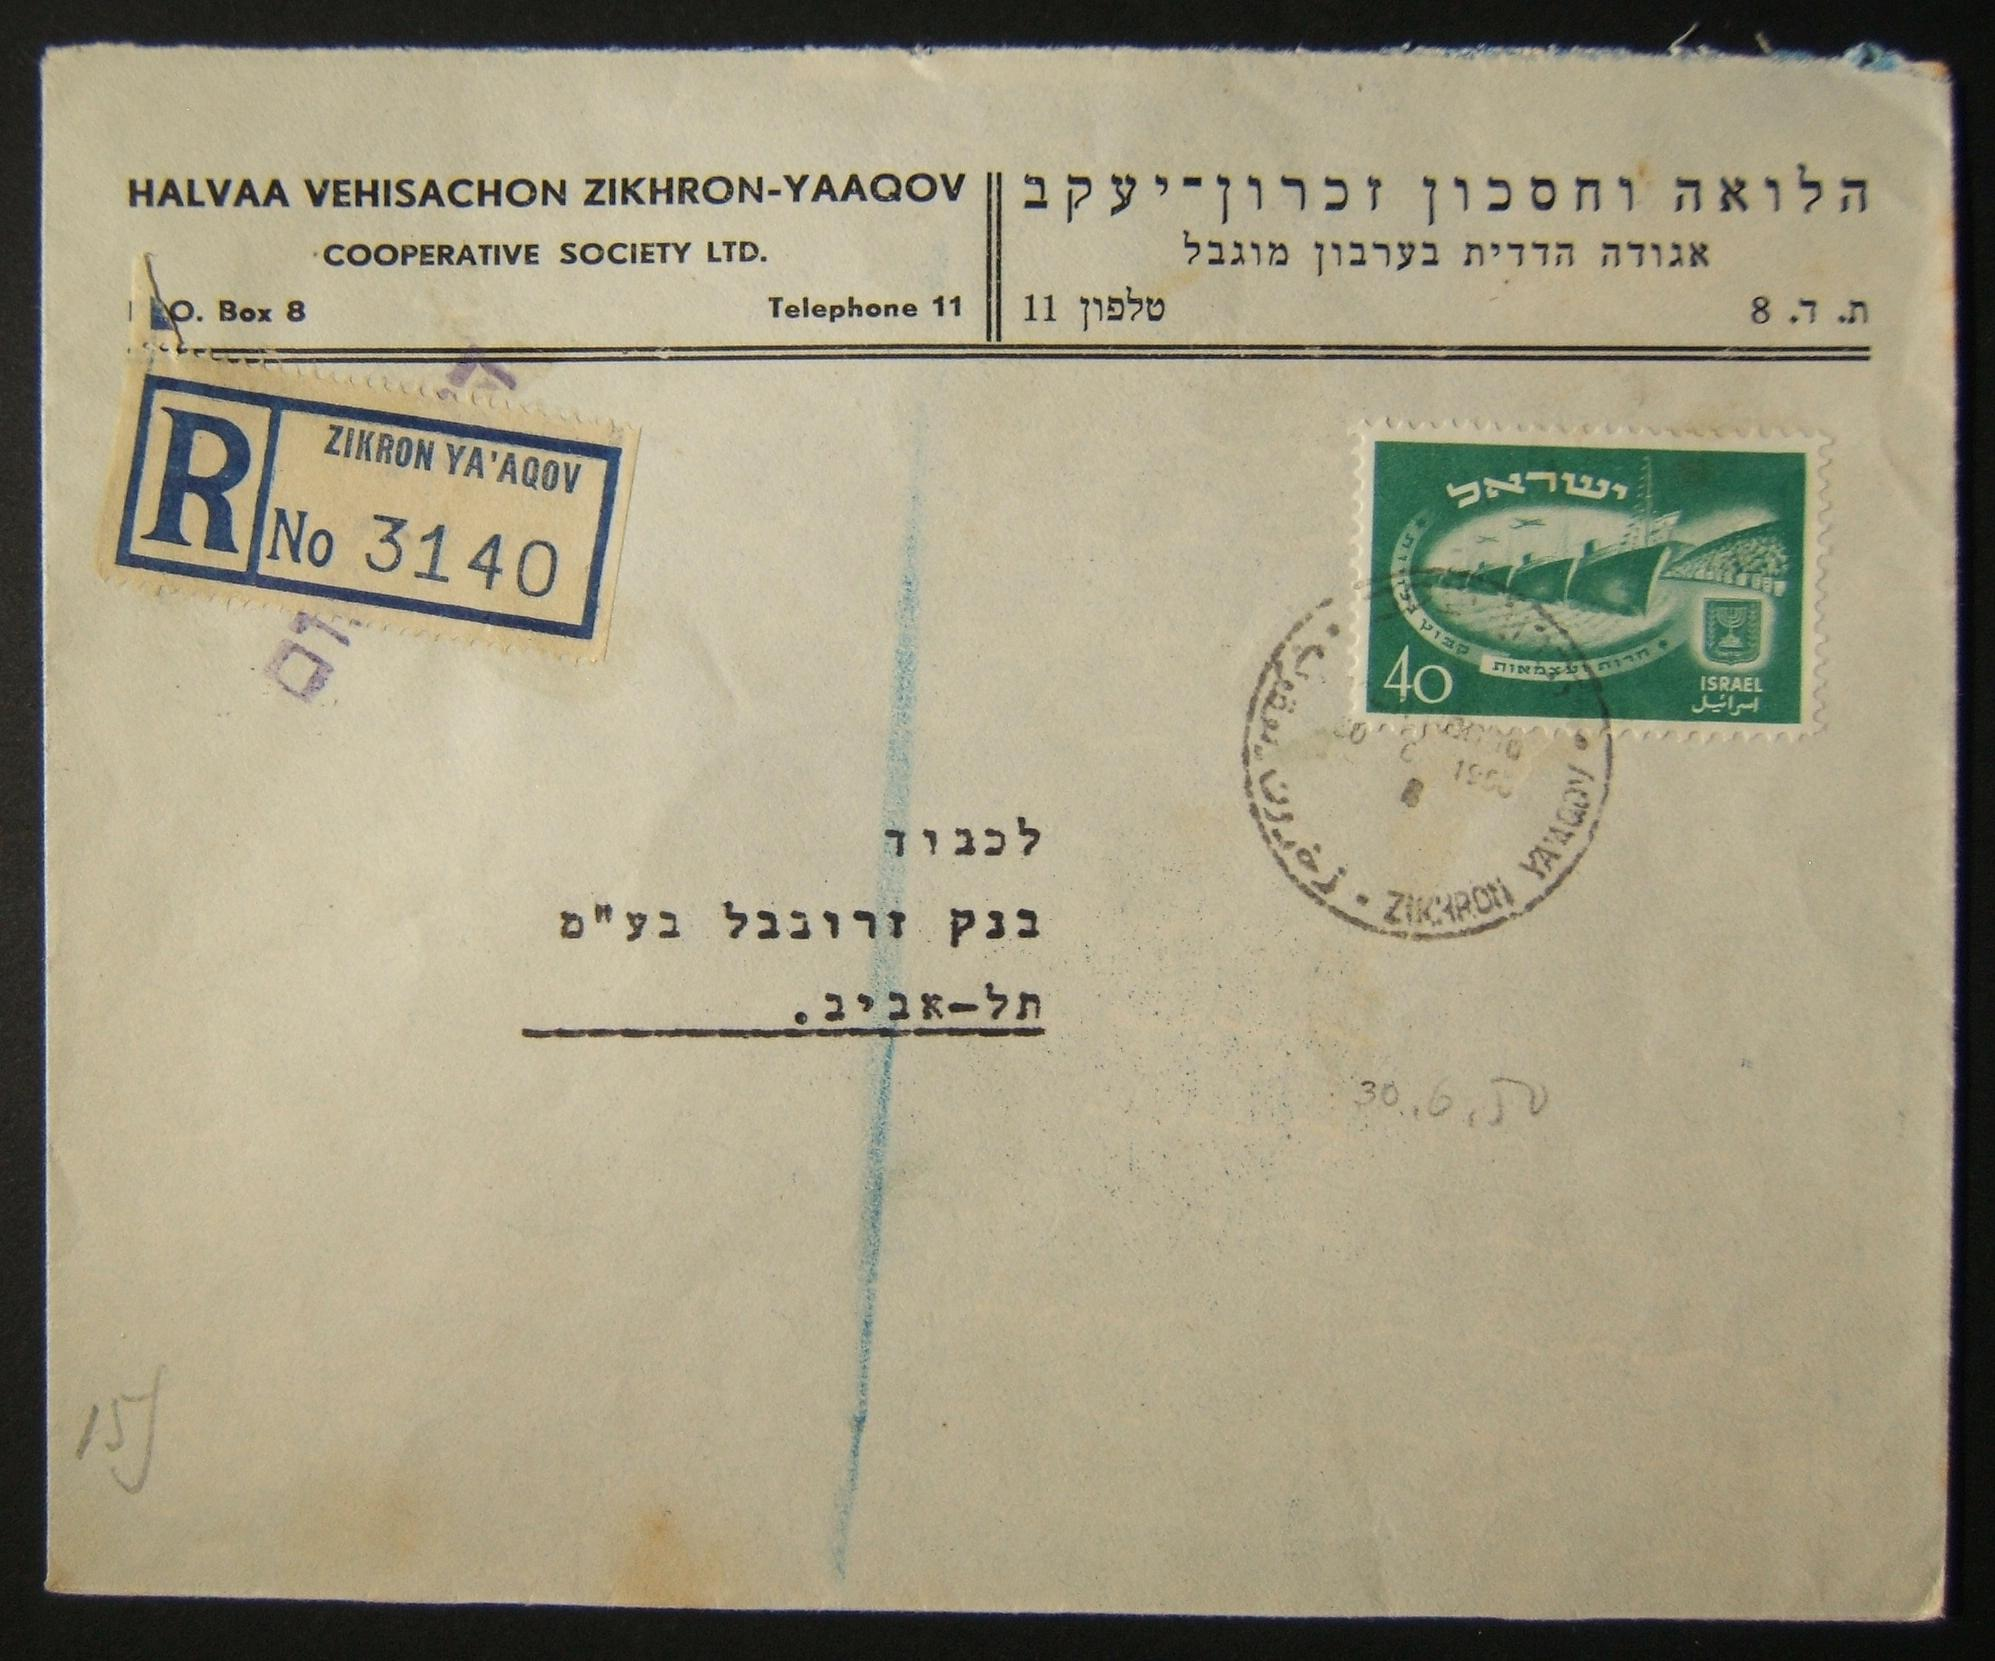 30-6-1950 Zichron Yaakov to Tel Aviv mail with Independence frank & alternate postmark